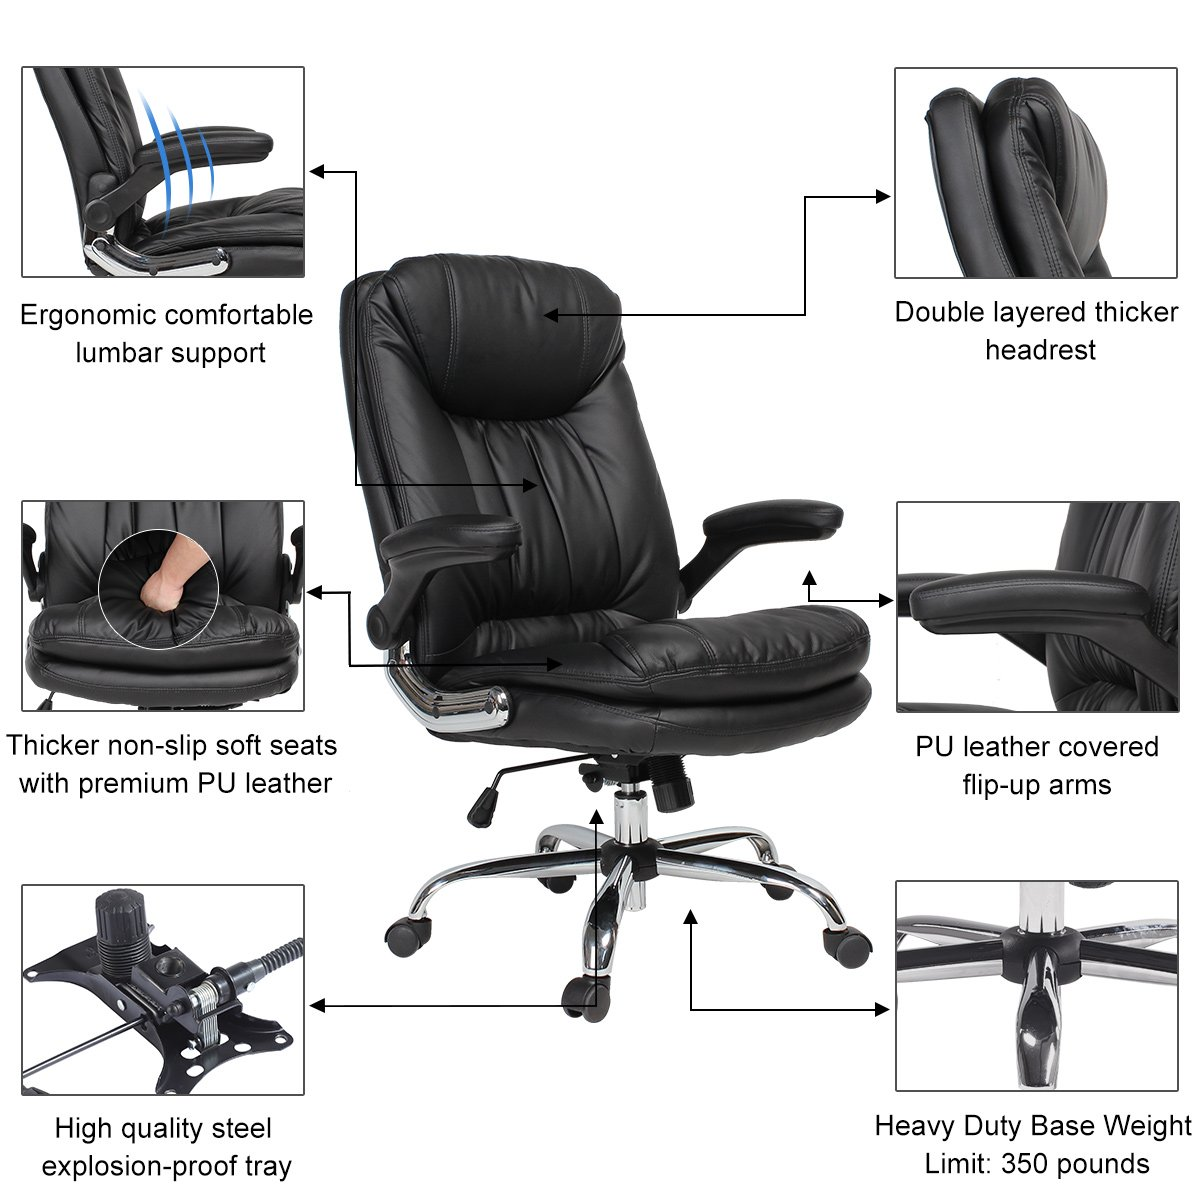 YAMASORO Ergonomic Home Office Chair with Flip-Up Arms and Comfy Headrest PU Leather High-Back Computer Desk Chair Big and Tall Capacity 330lbs Black by YAMASORO (Image #5)